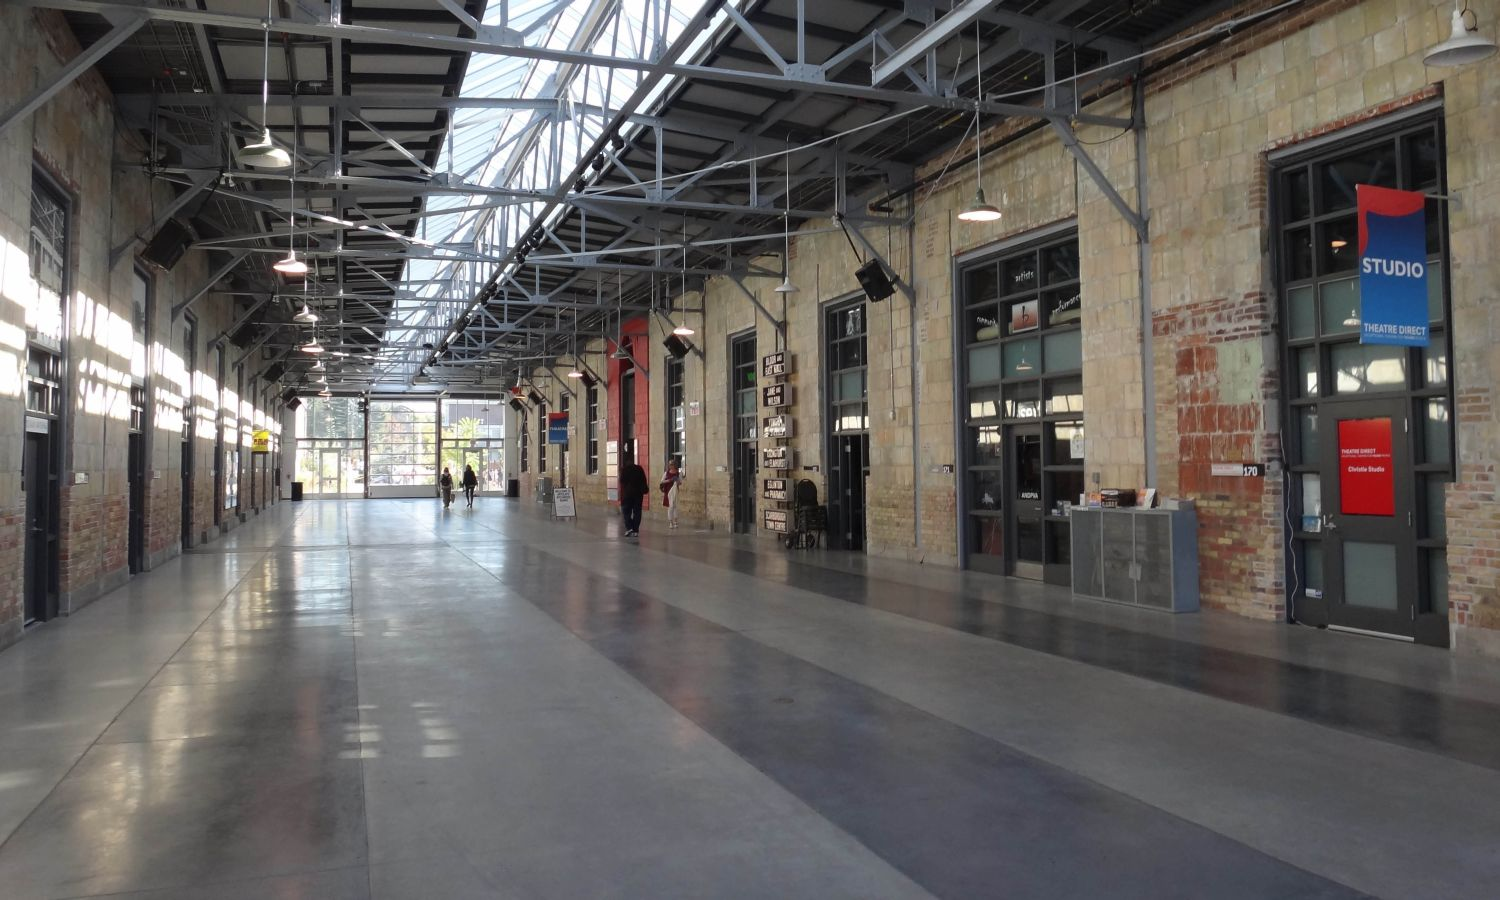 Adaptive reuse, Wynchwood Barns, Toronto, DTAH (image source: Province of Ontario)